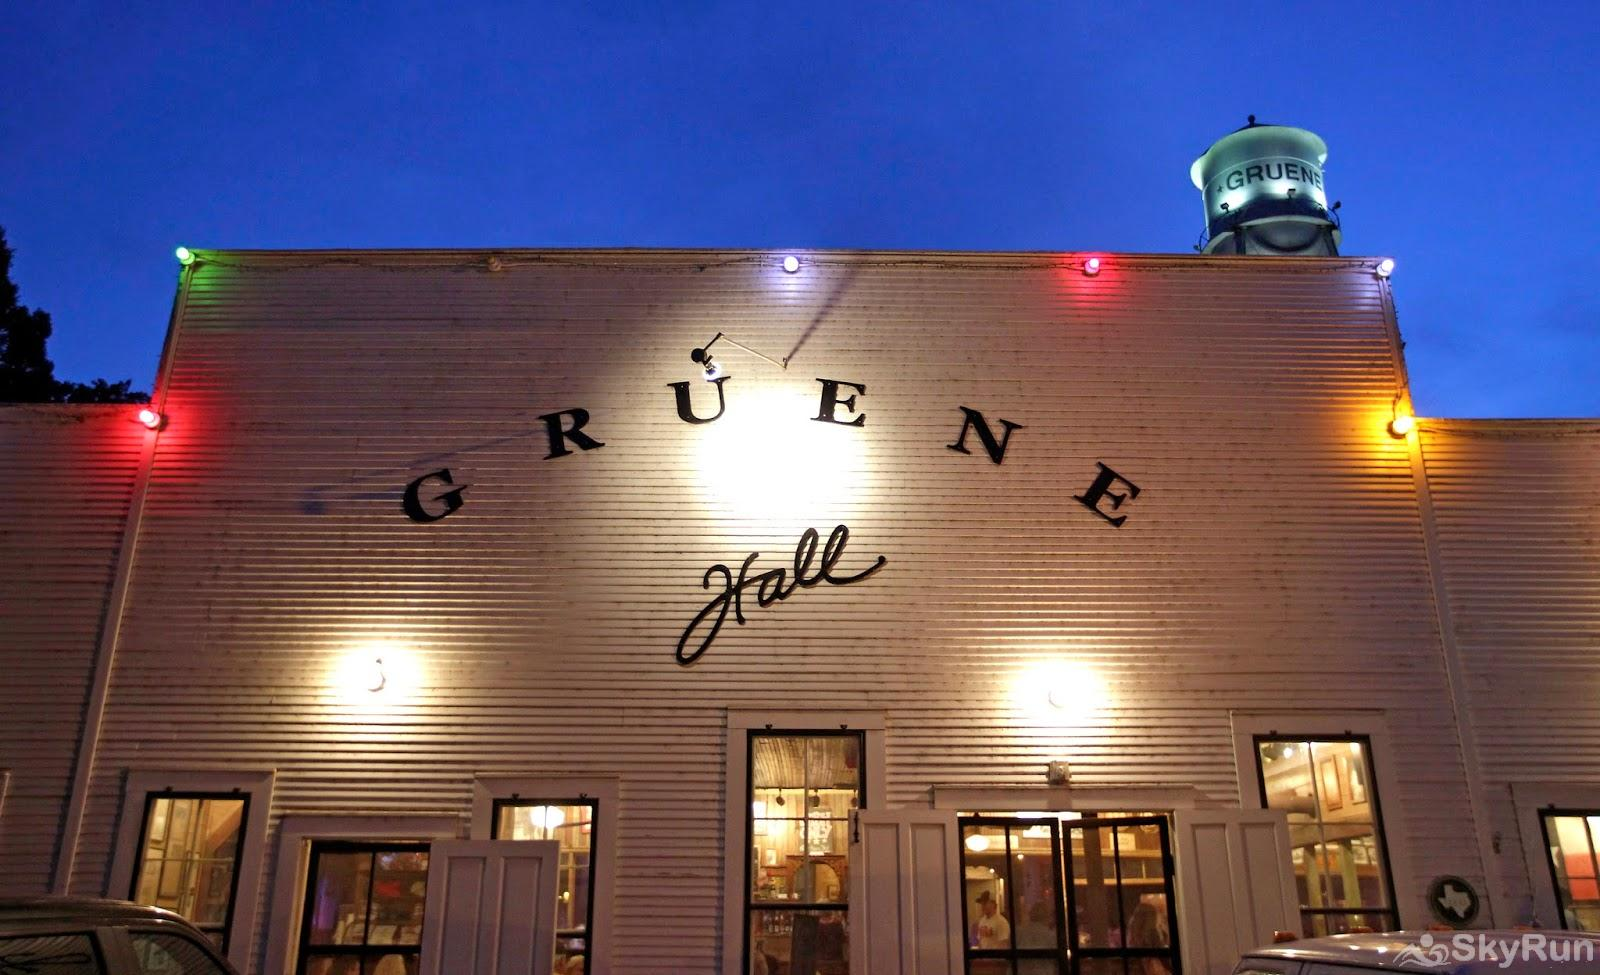 RIVENDELL LODGE Gruene Hall in nearby New Braunfels